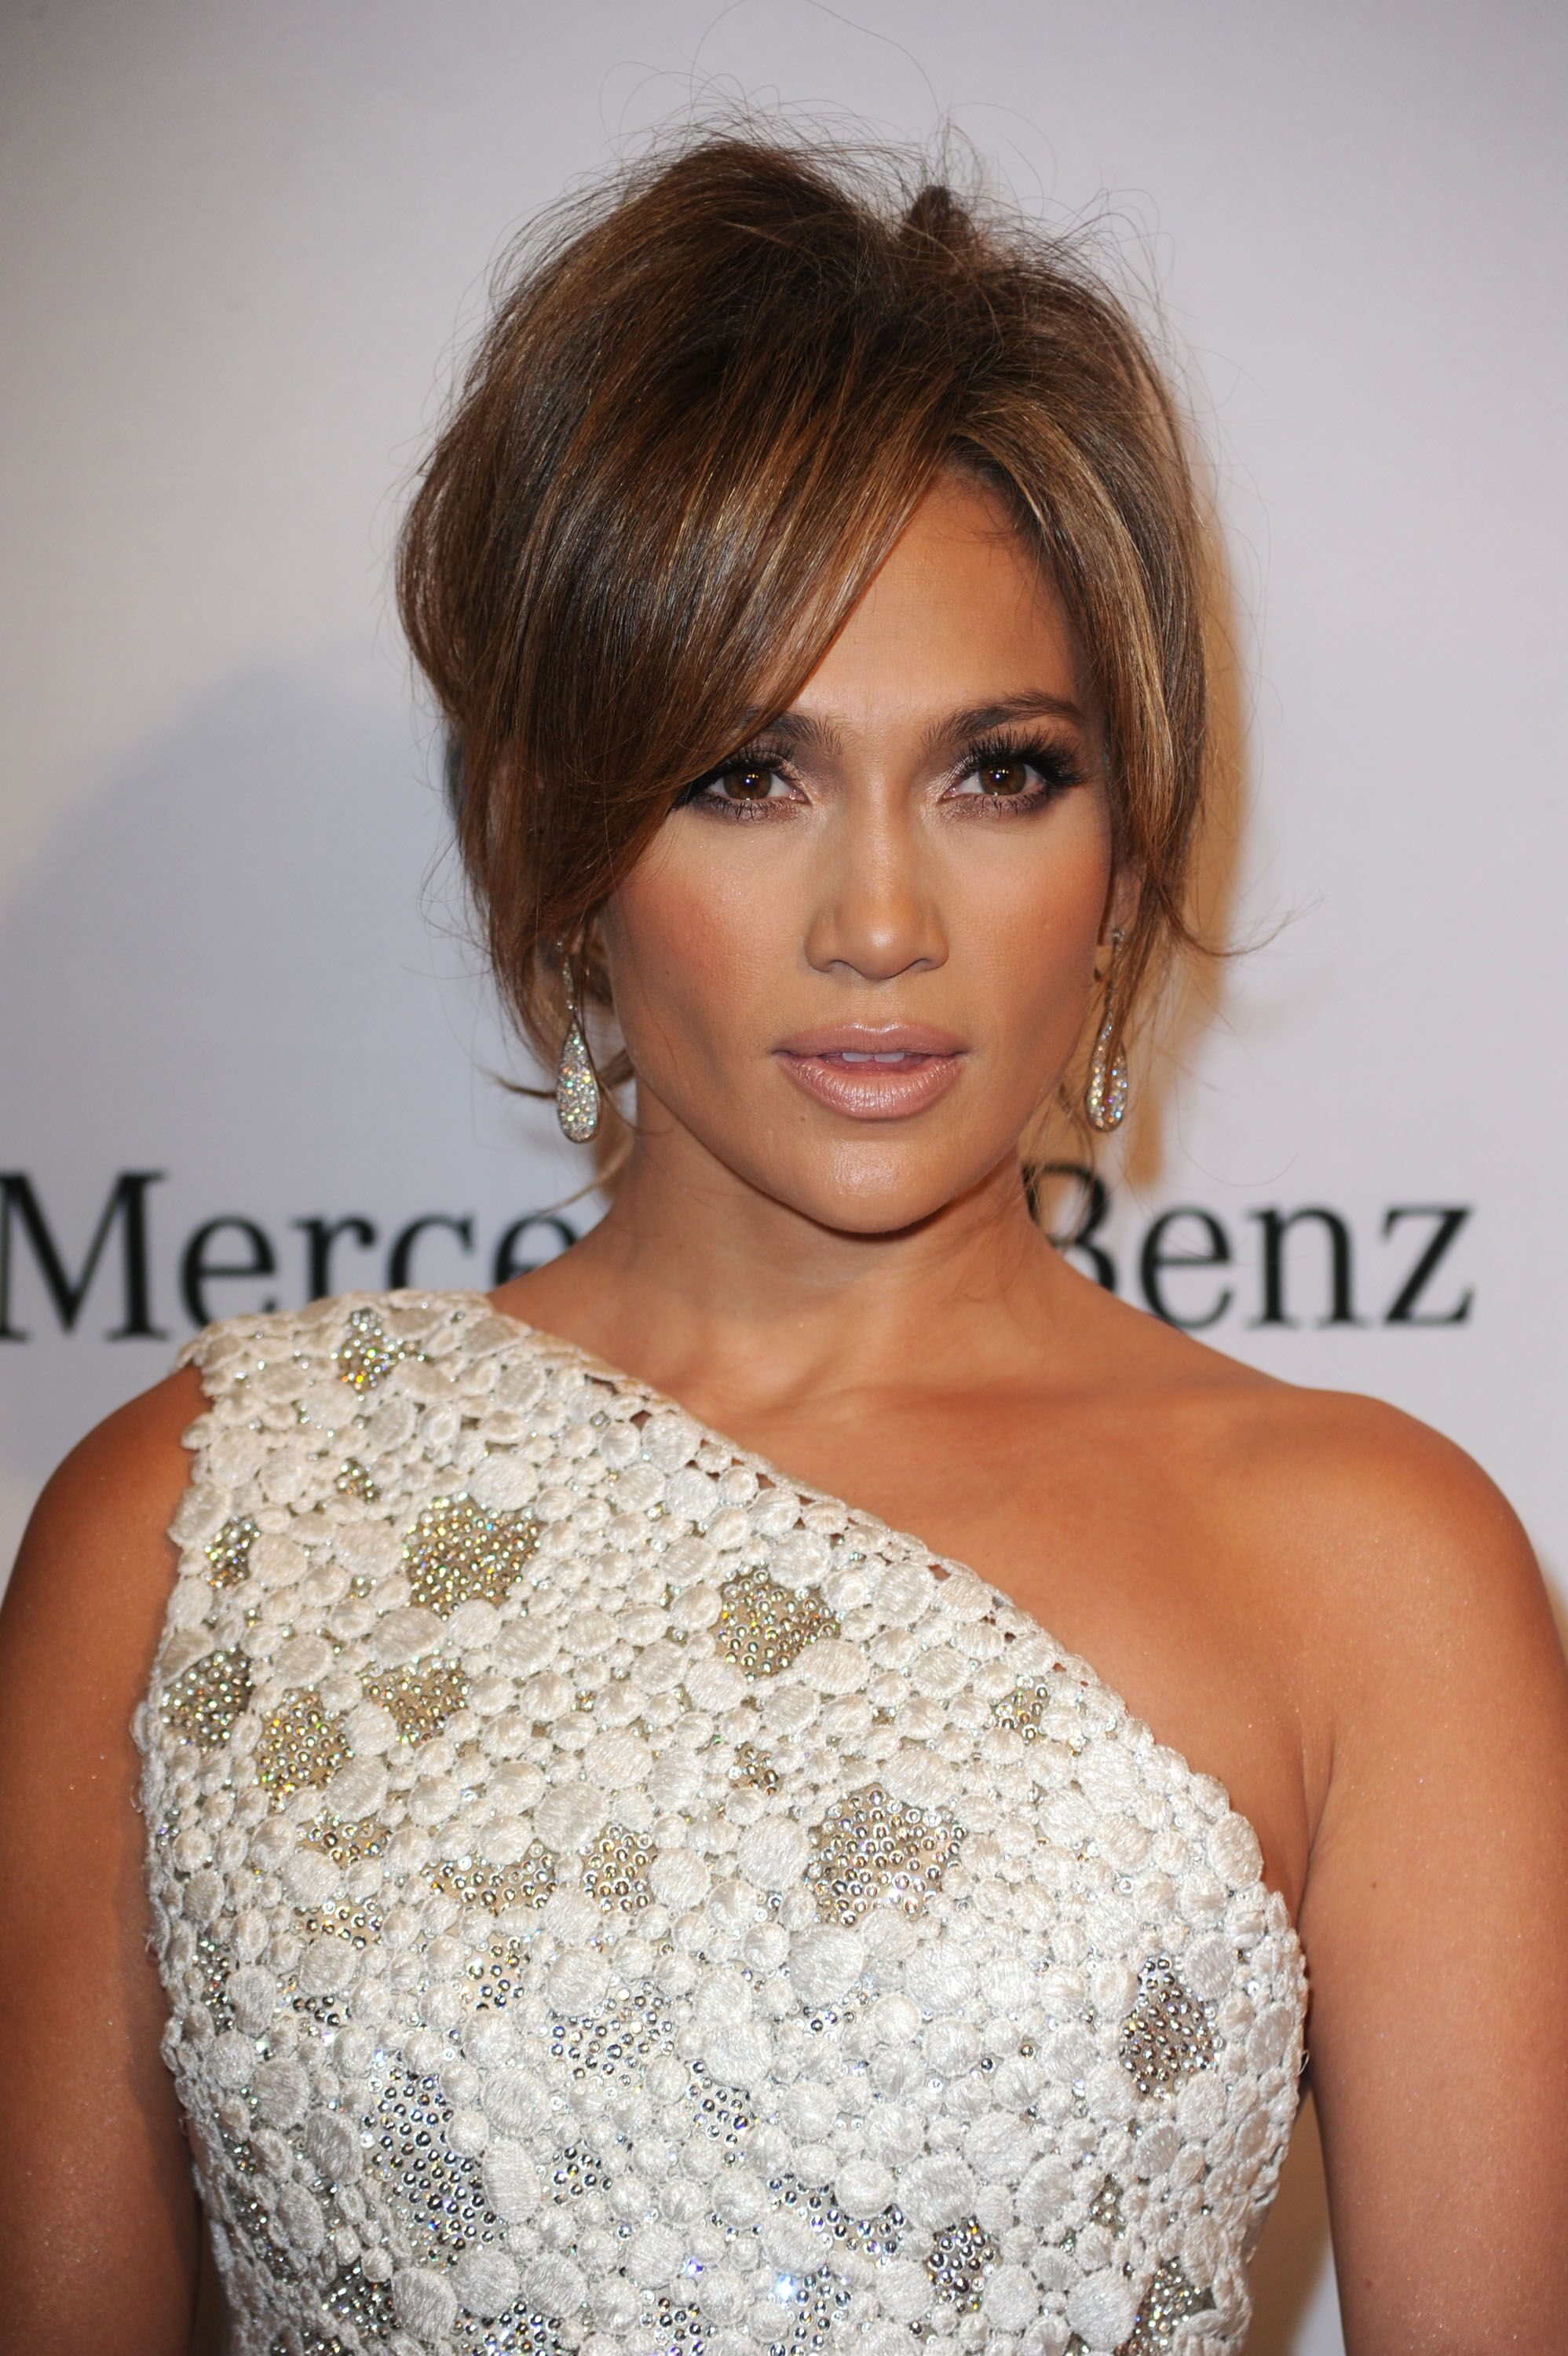 Jennifer Lopez during the 32nd Anniversary Carousel Of Hope Gala in 2010. | Source: Getty Images